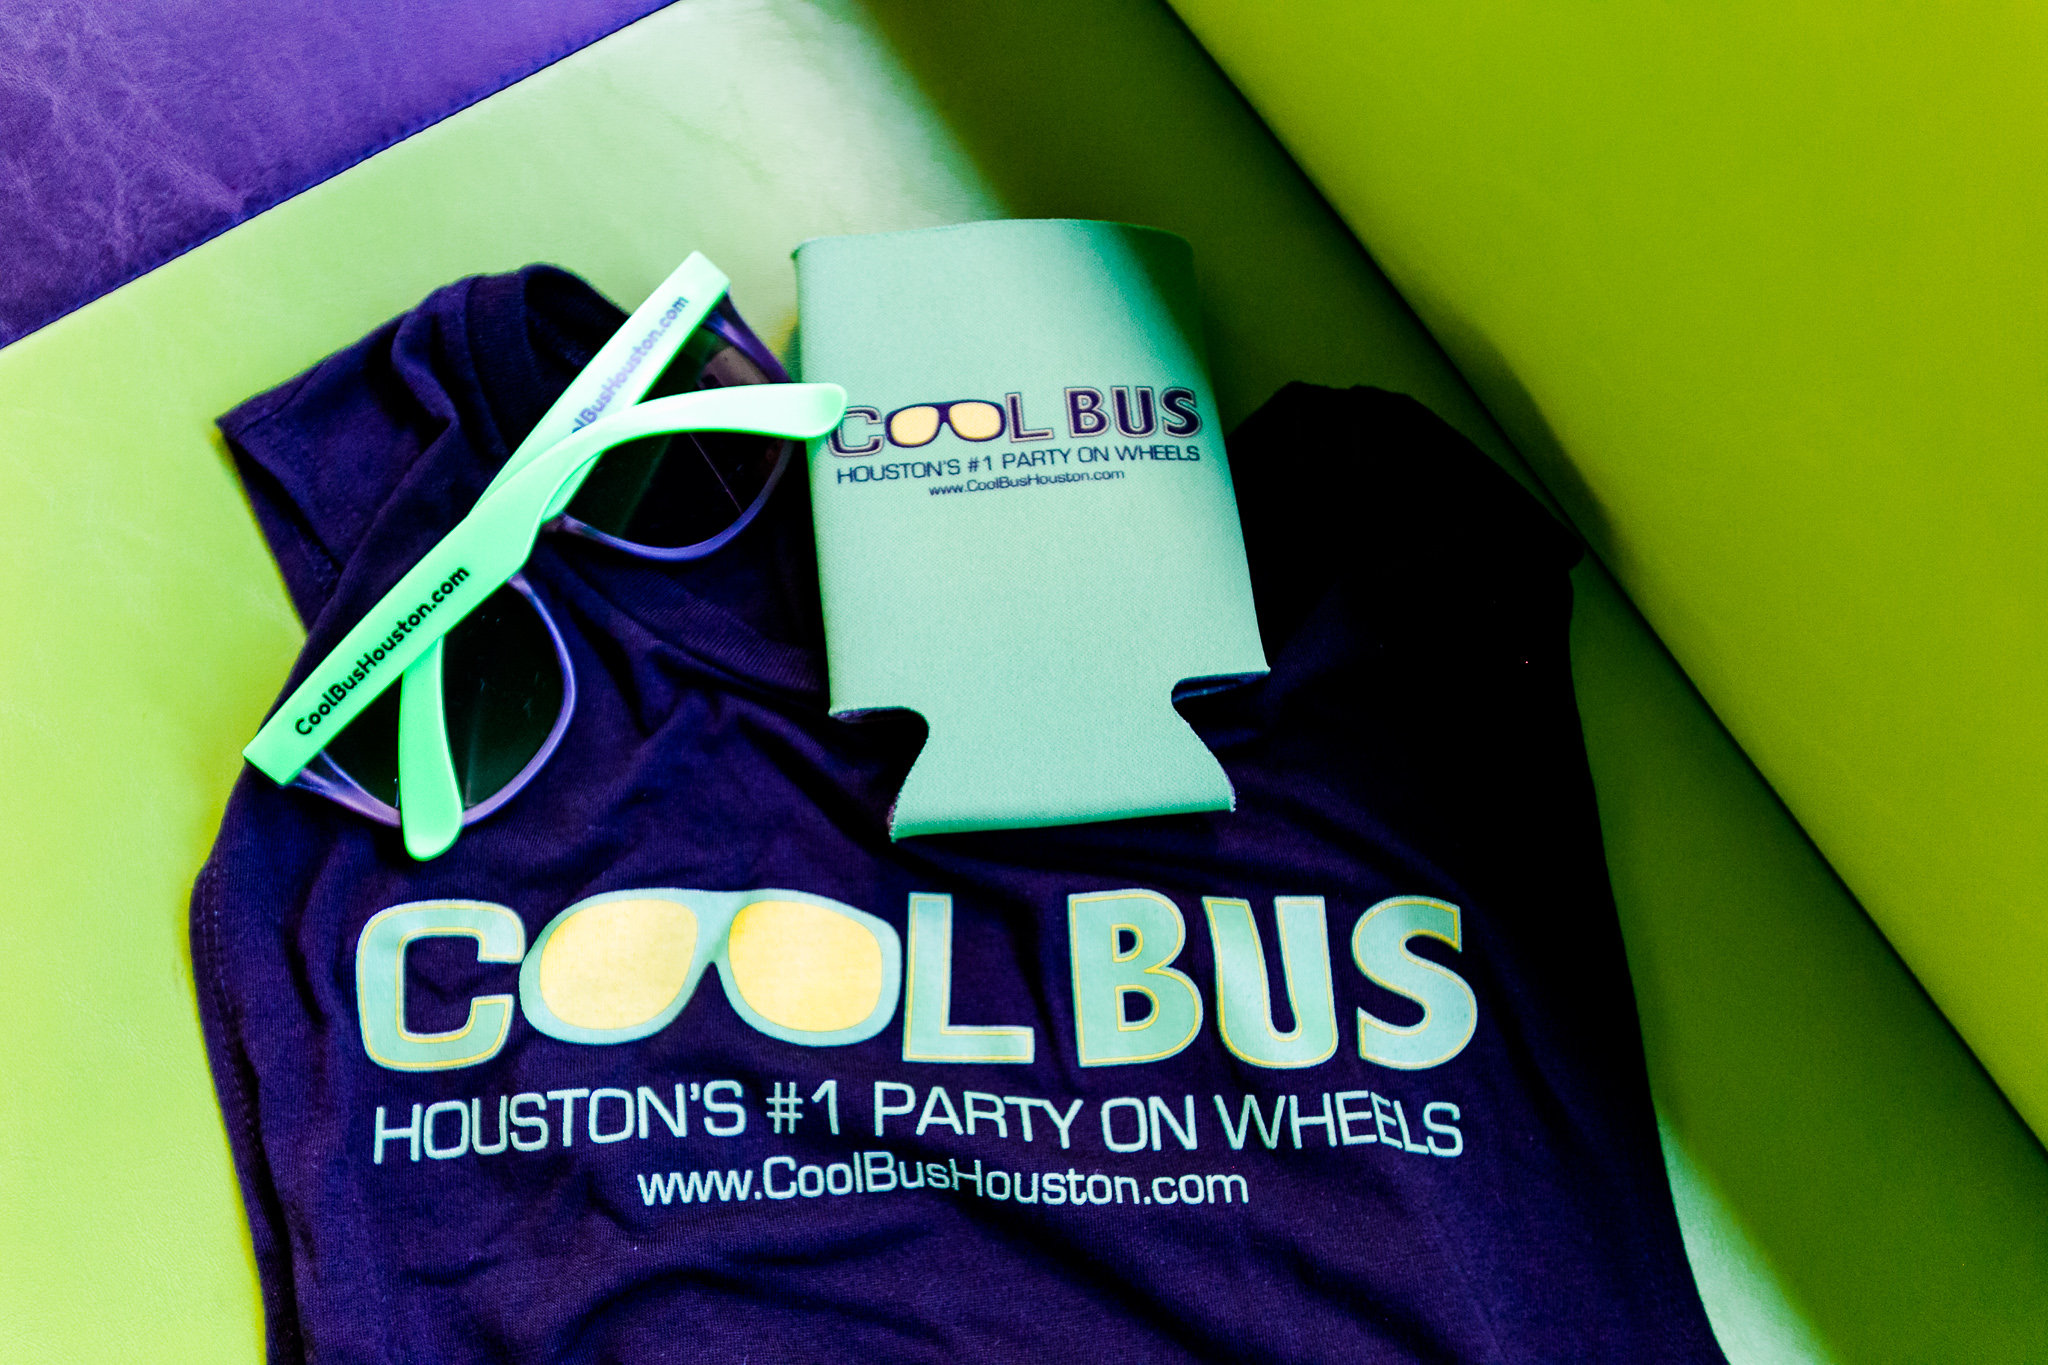 Cool Bus Houston Merchandise